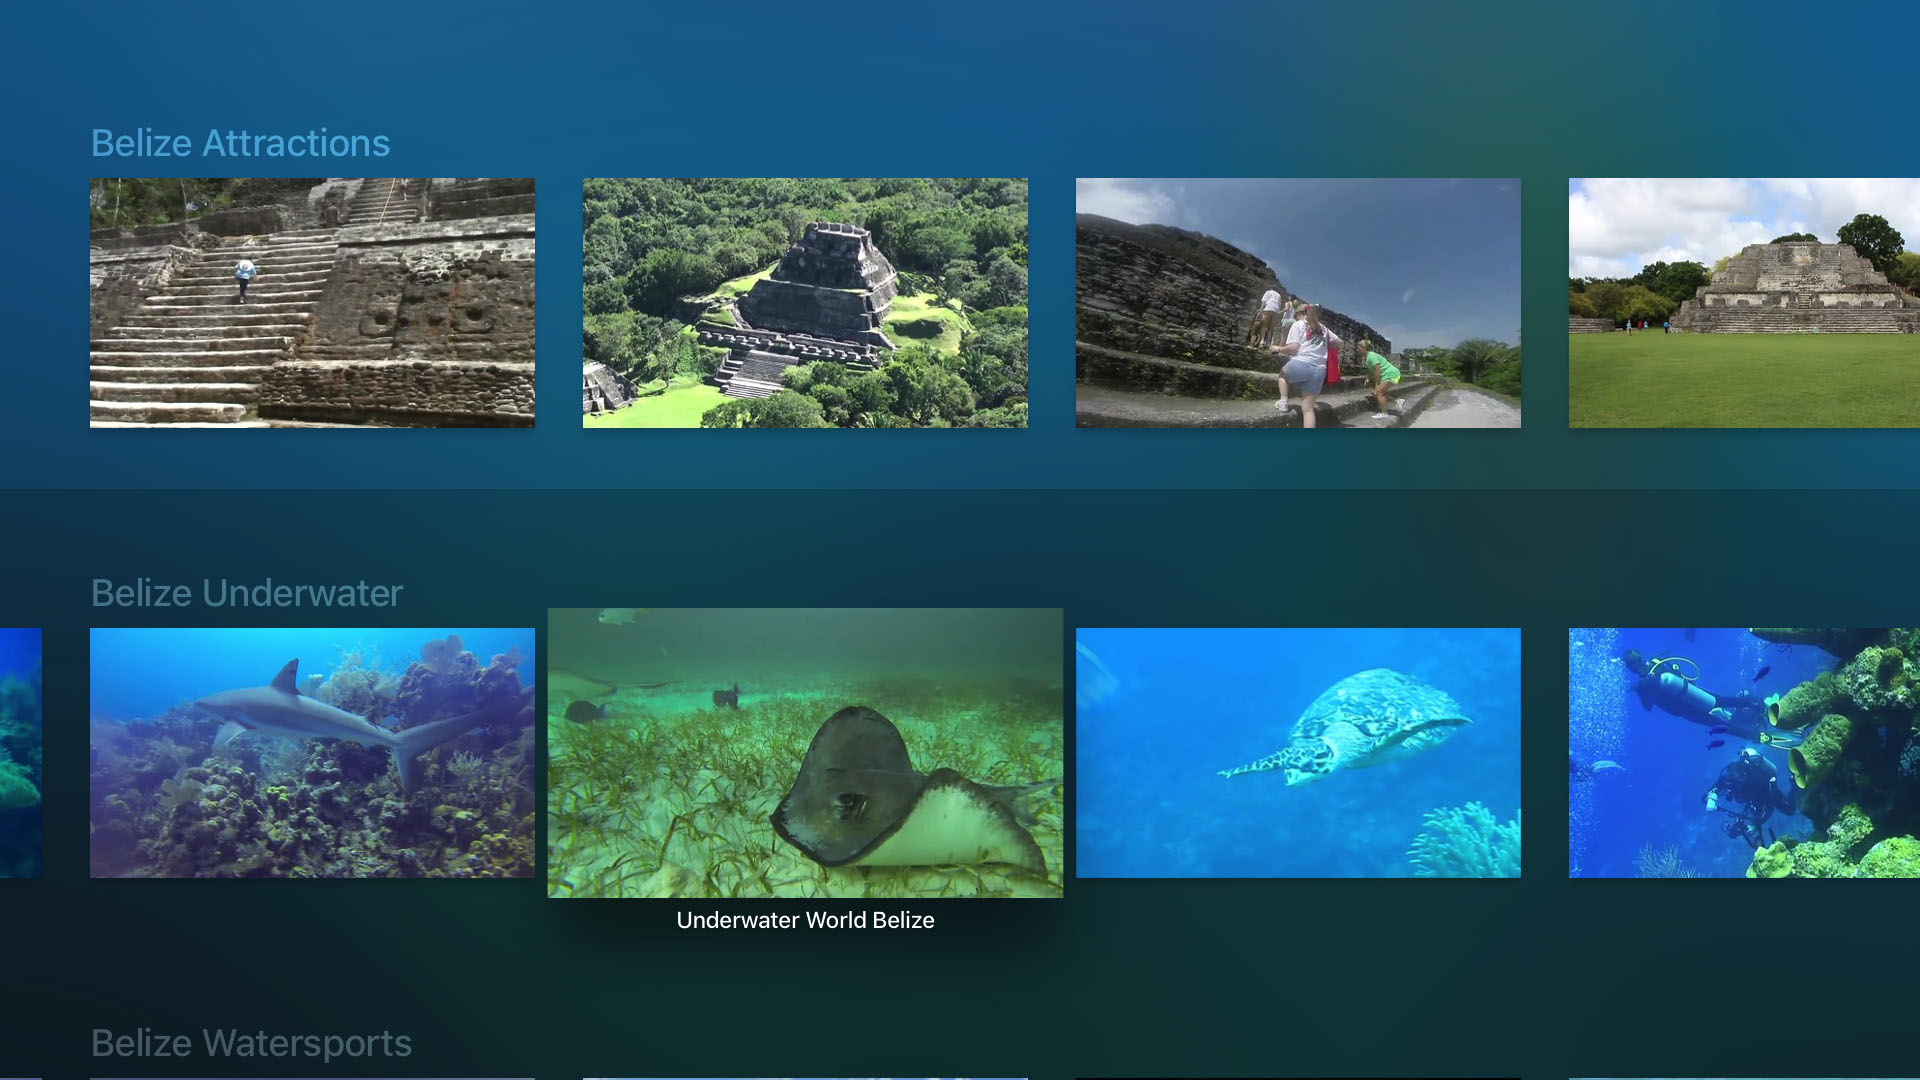 The Belize Channel Screenshot 002